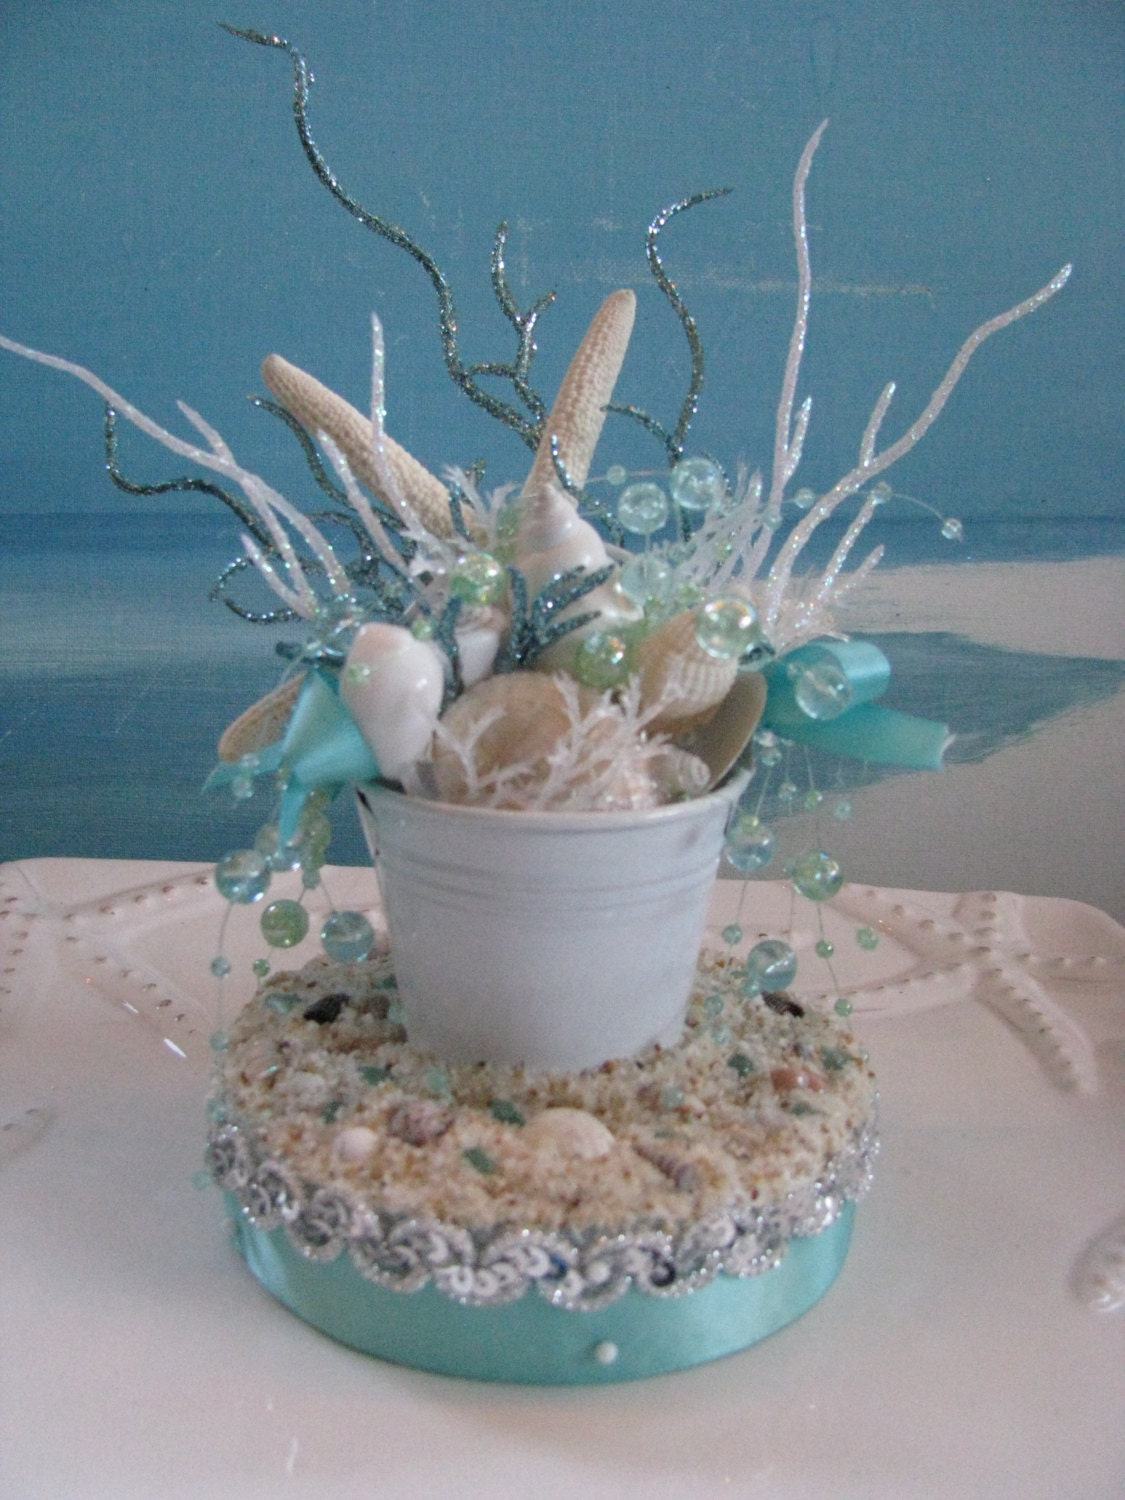 Sand pail beach wedding cake topper by ceshoretreasures on